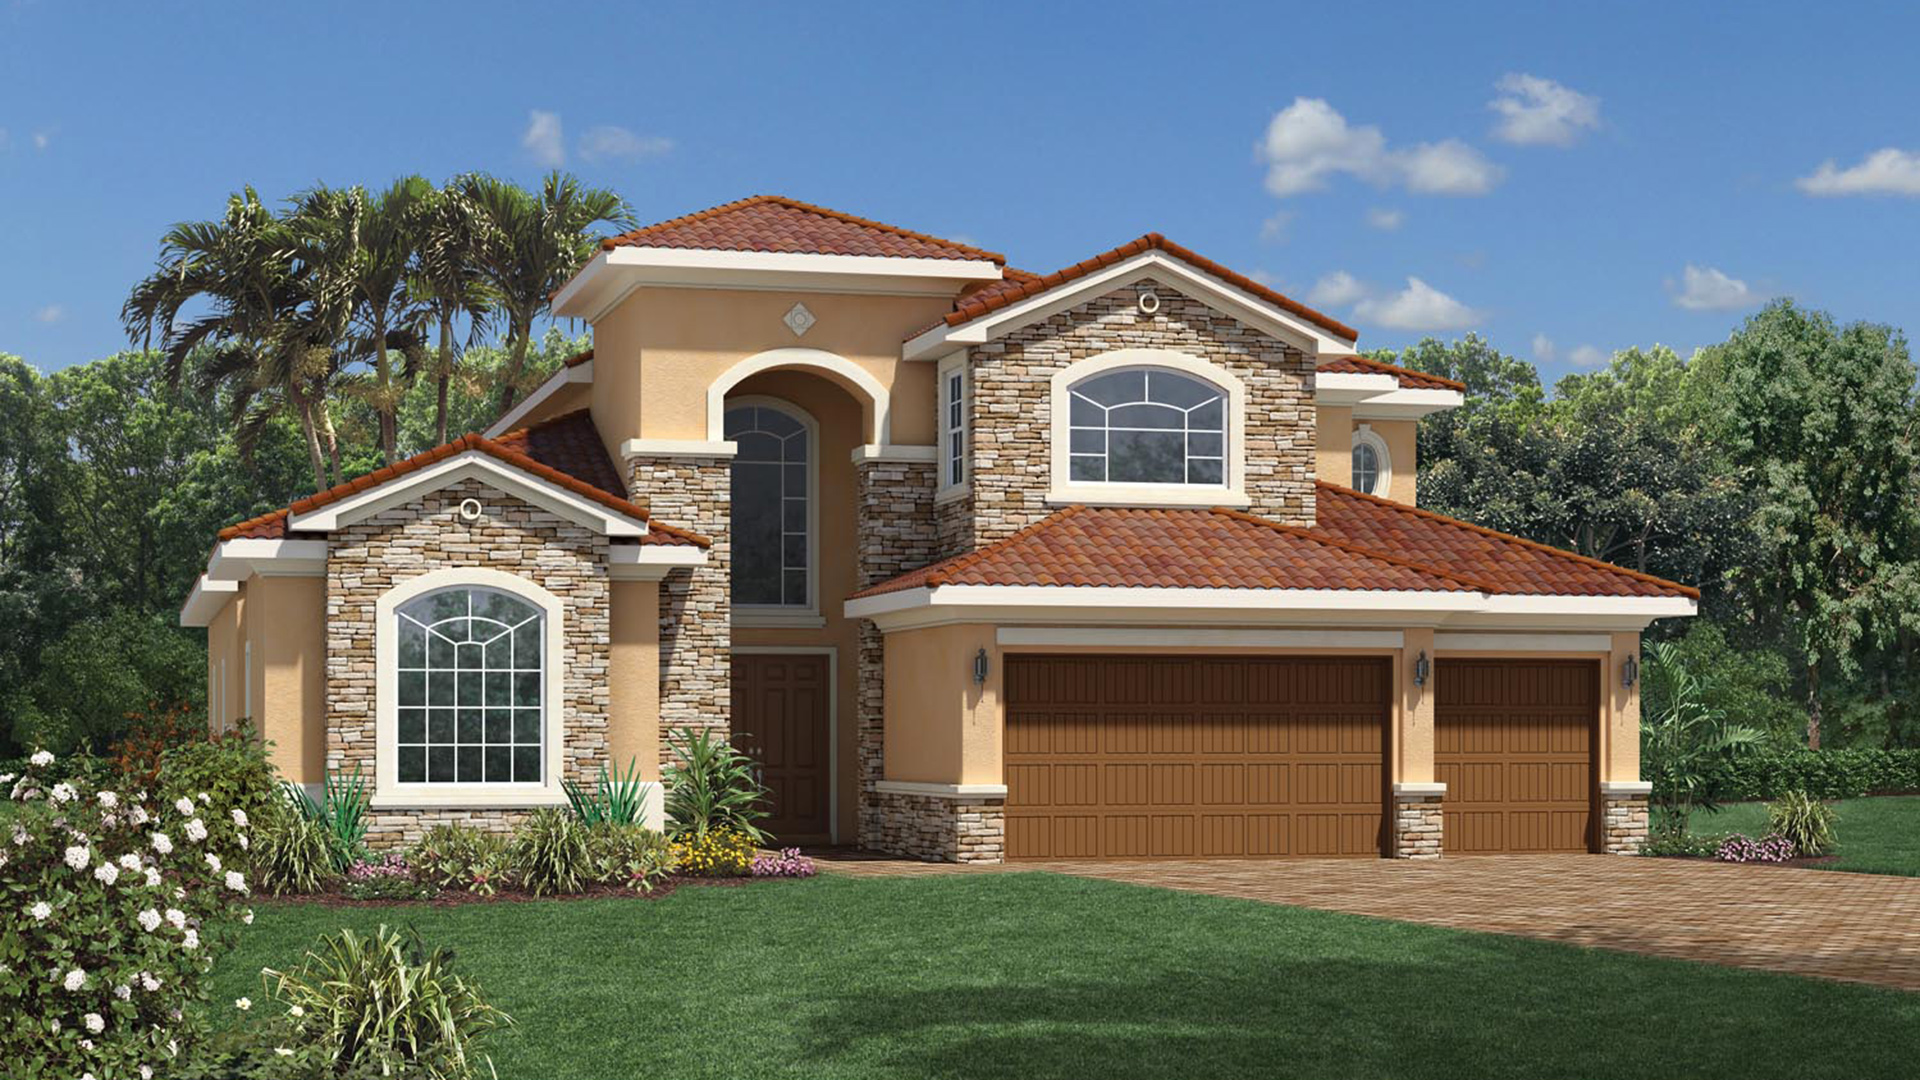 Jupiter country club the heritage collection the for The country home collection